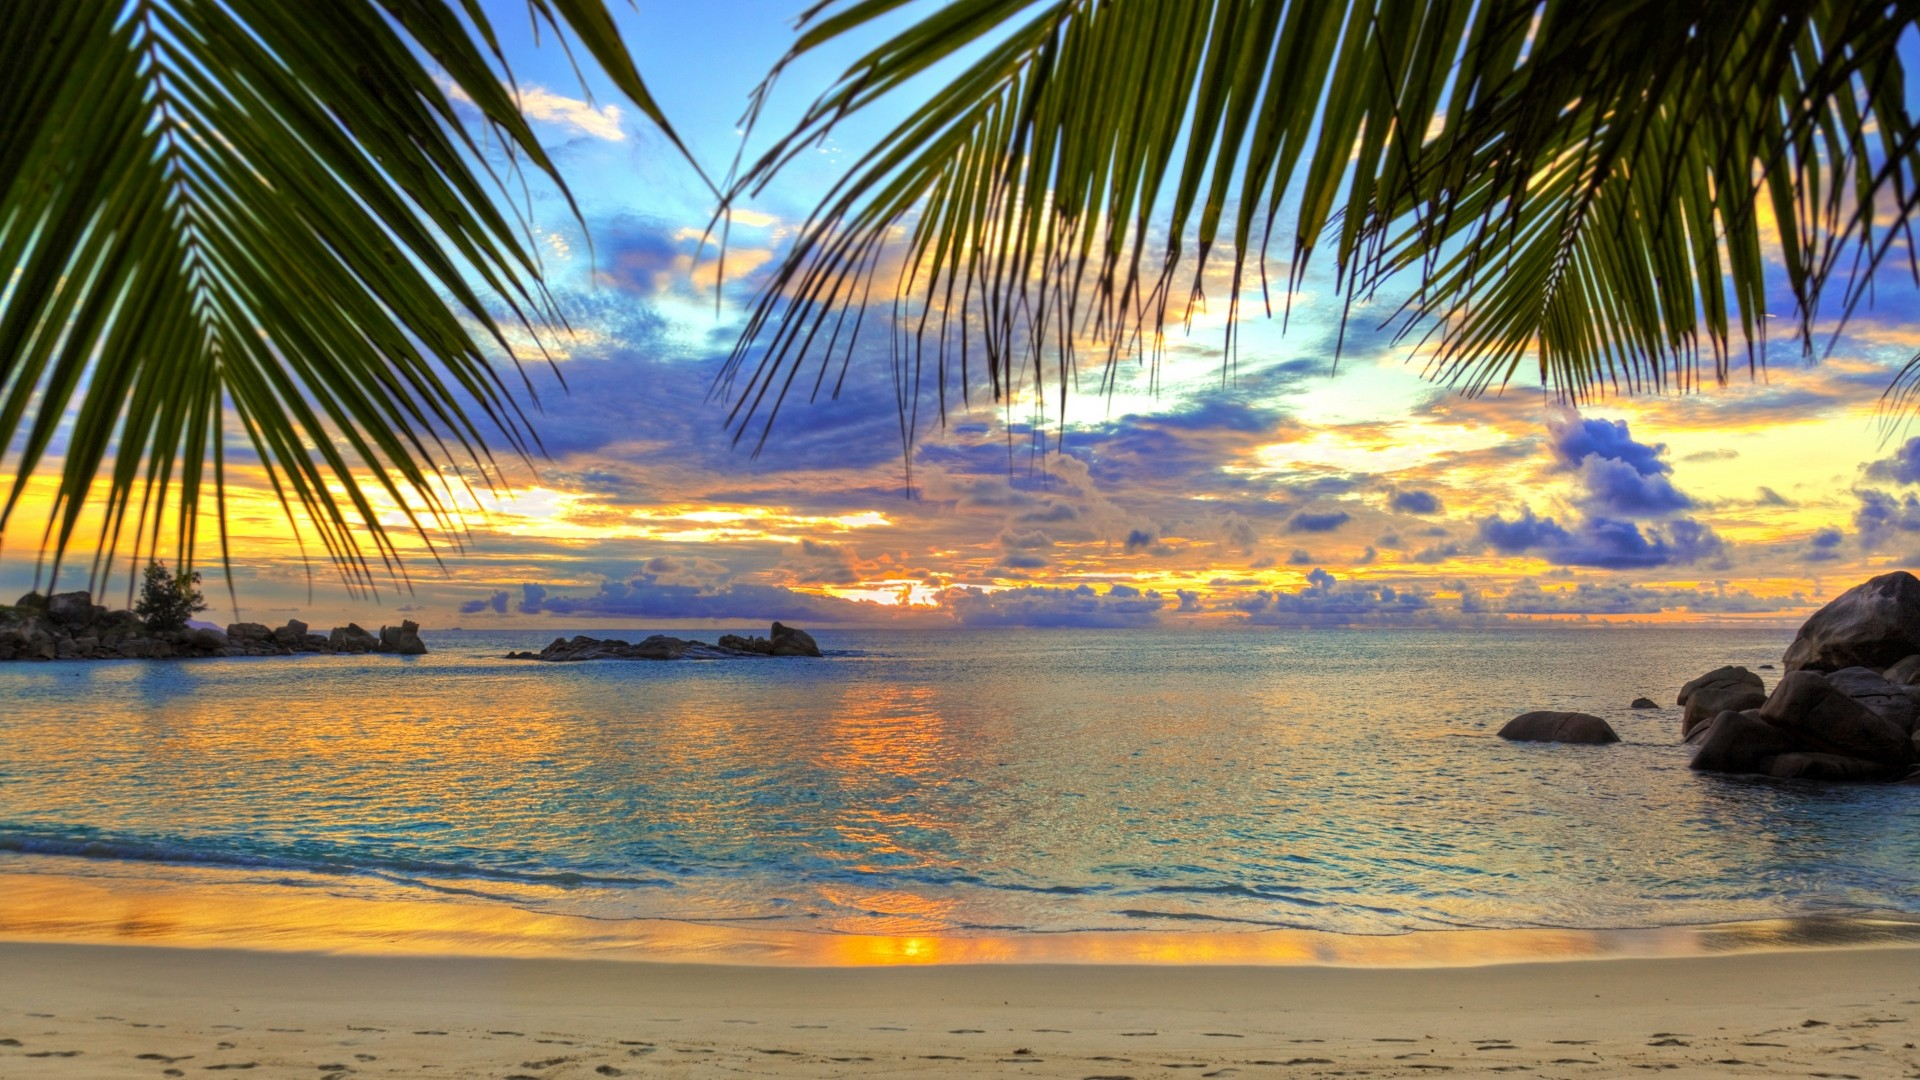 1920x1080 Preview wallpaper beach, tropics, sea, sand, palm trees